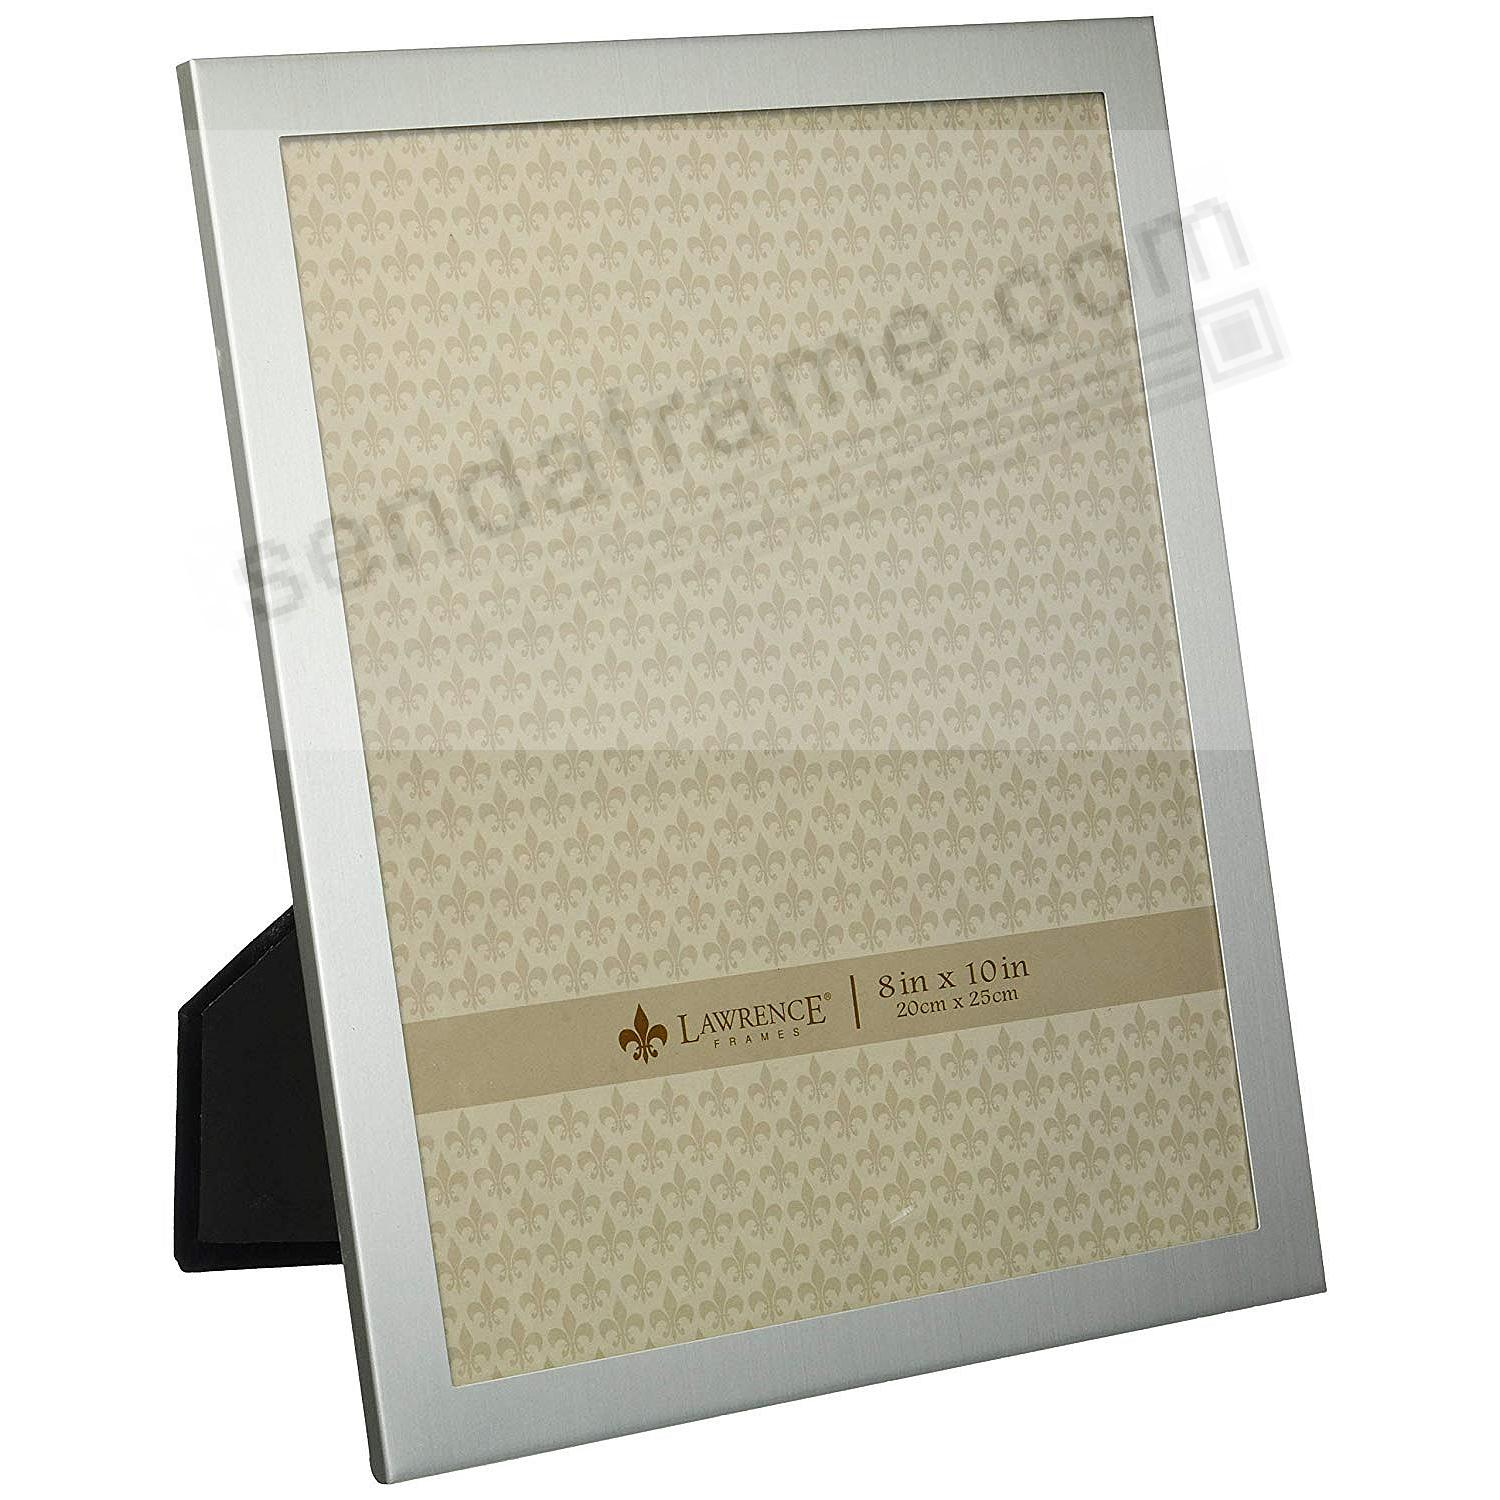 Brushed Silverplate 8x10 frame by Lawrence®